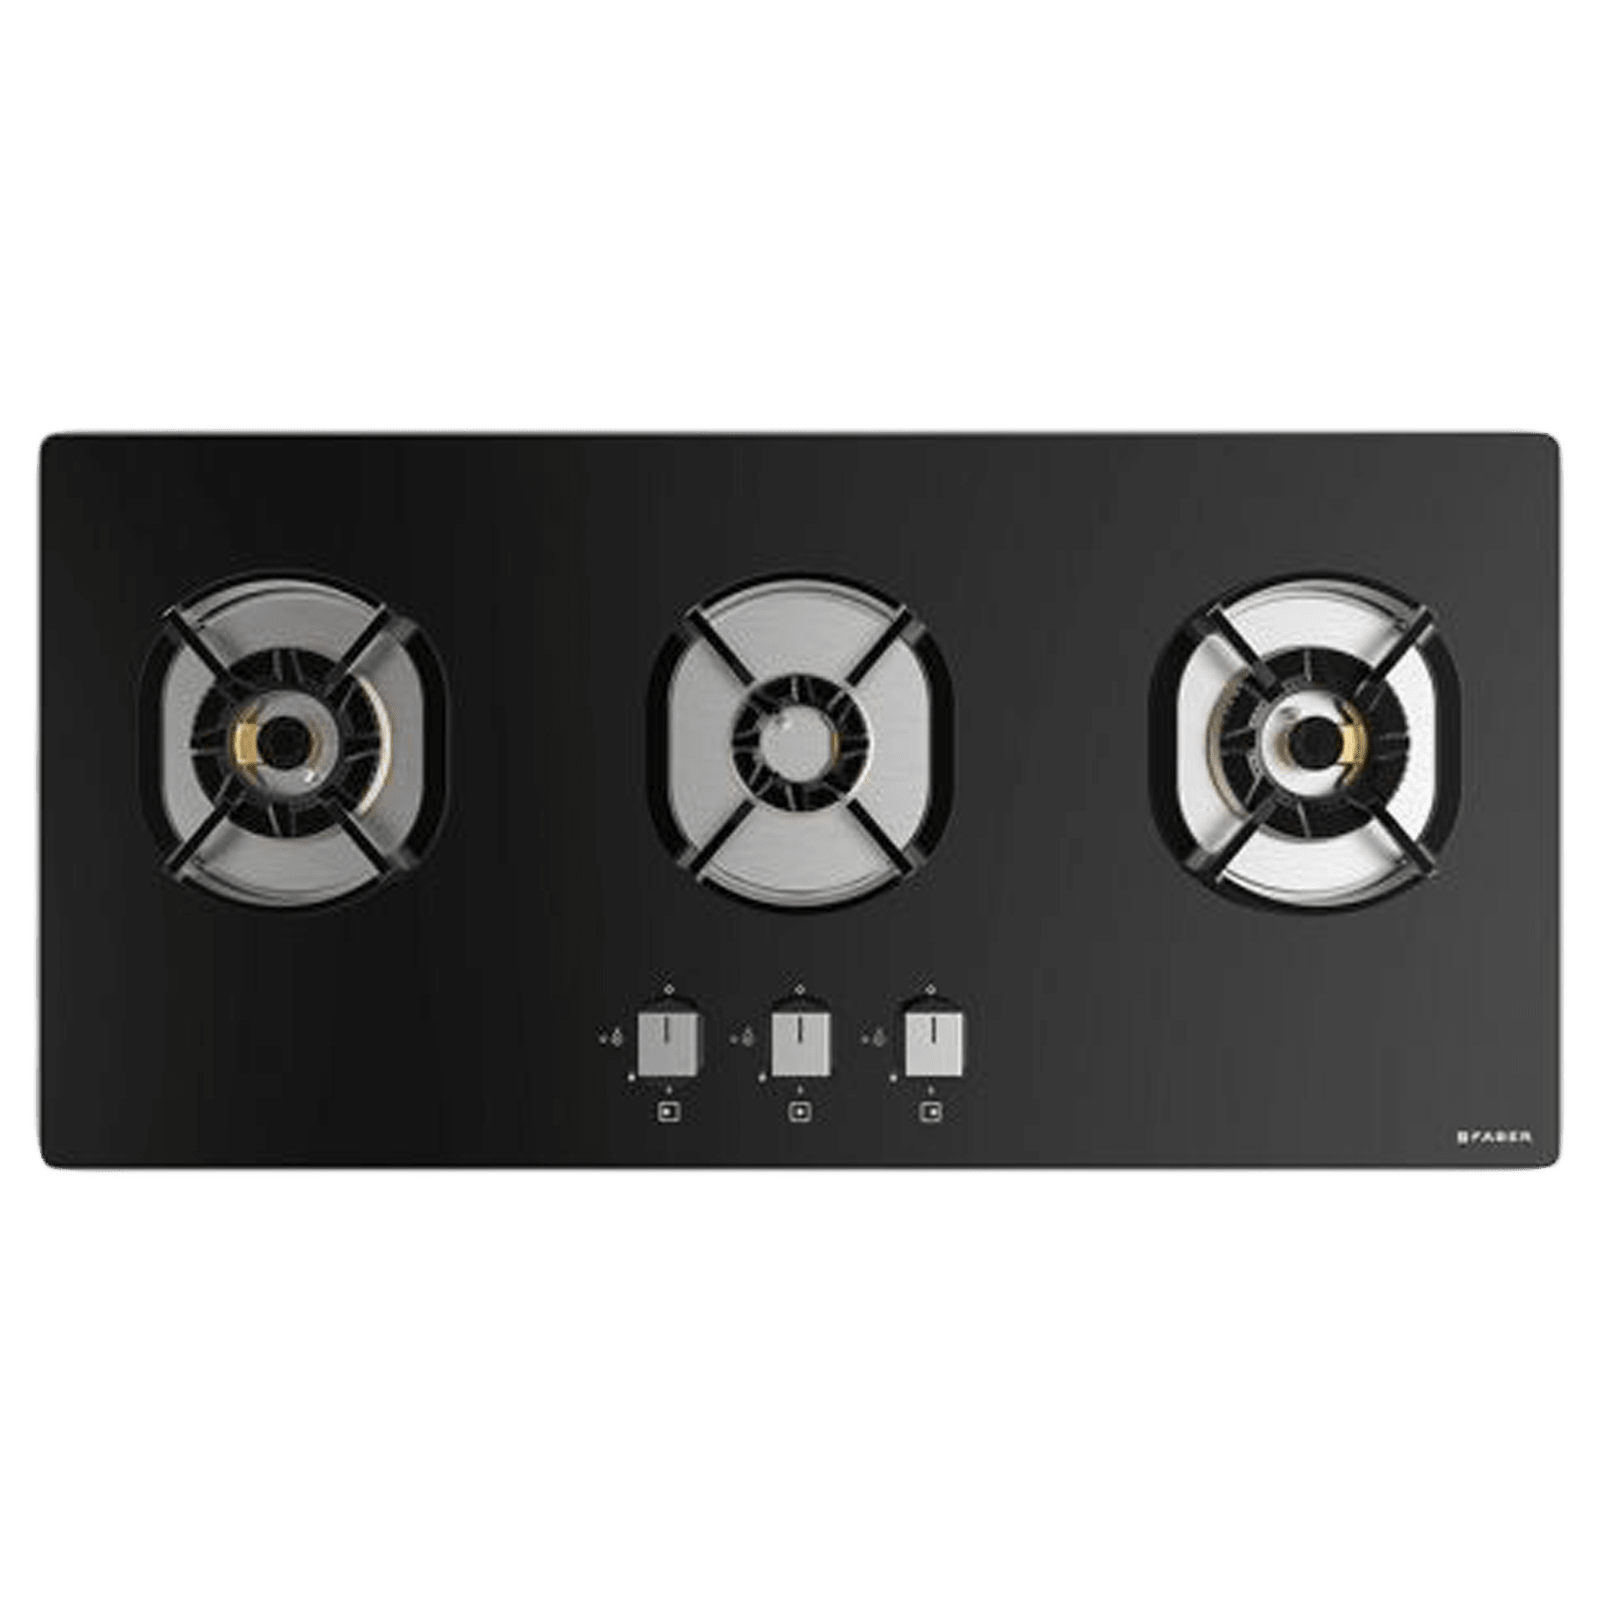 Faber Nexus IND HT803 CRS BR CI AI 3 Burner Toughened Glass Built-in Gas Hob (Auto Ignition, 106.0606.343, Black)